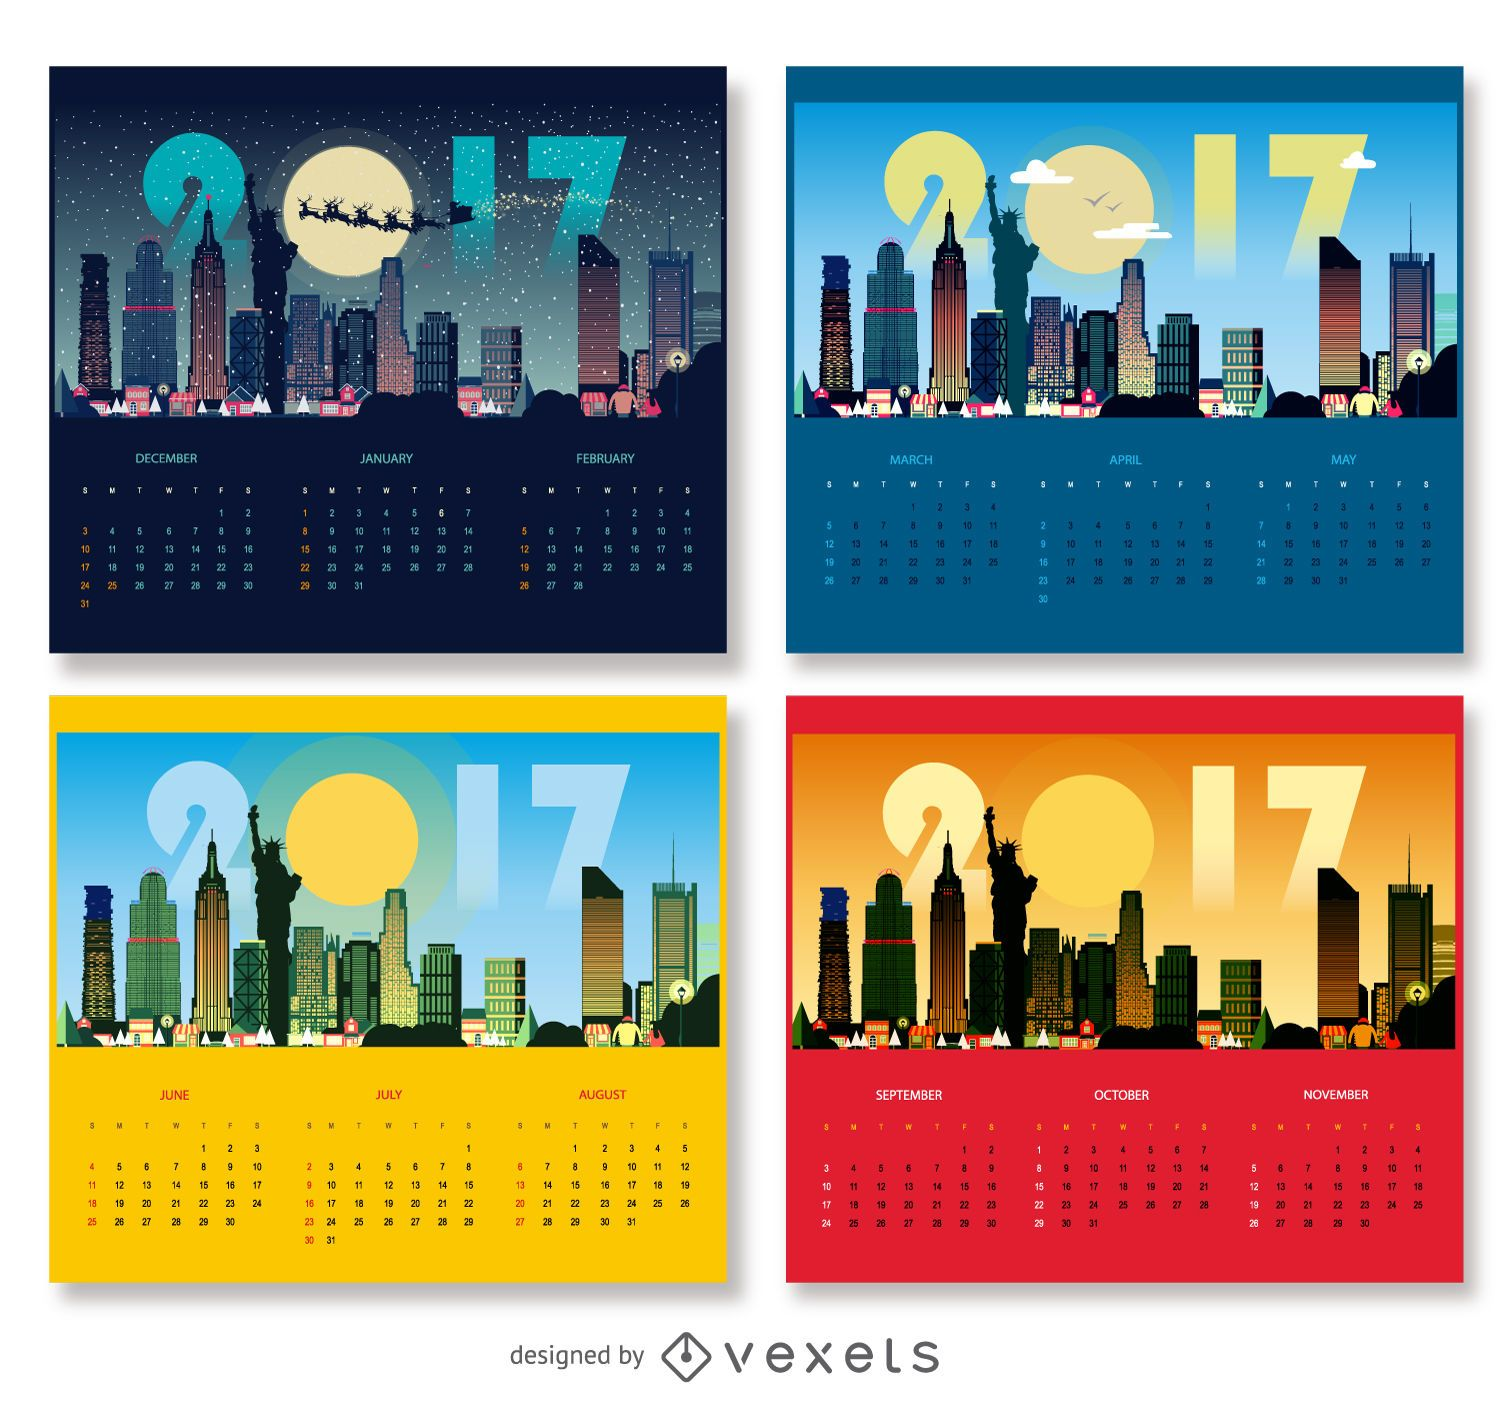 2017 calendar design - Vector download